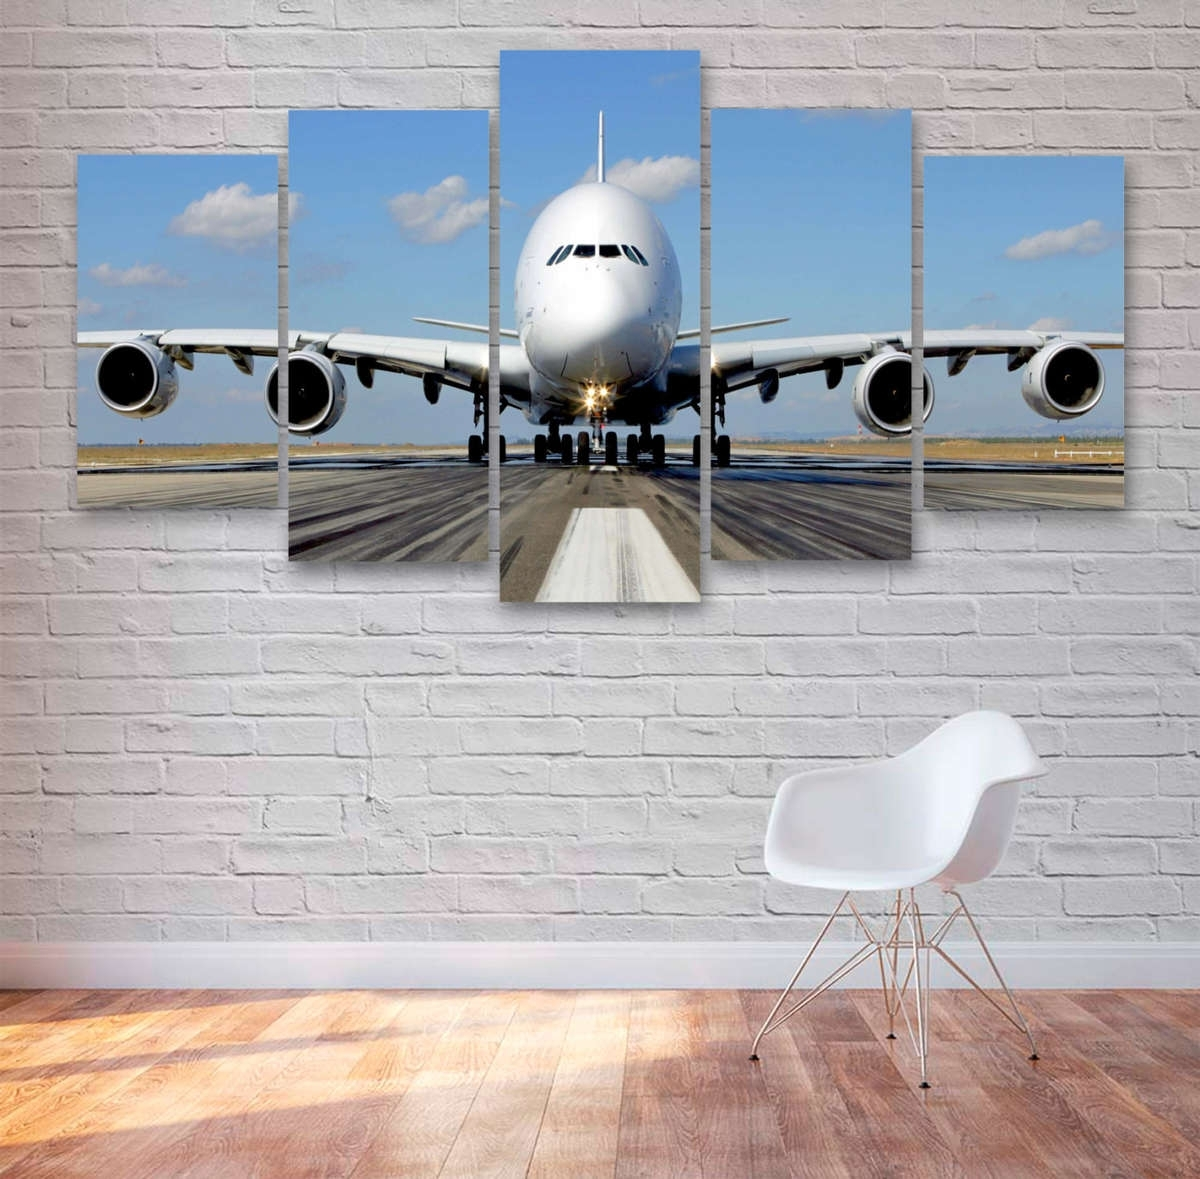 Passenger Airplane Multi Panel Canvas Wall Art – Mighty Paintings For Best And Newest Aviation Wall Art (View 17 of 20)